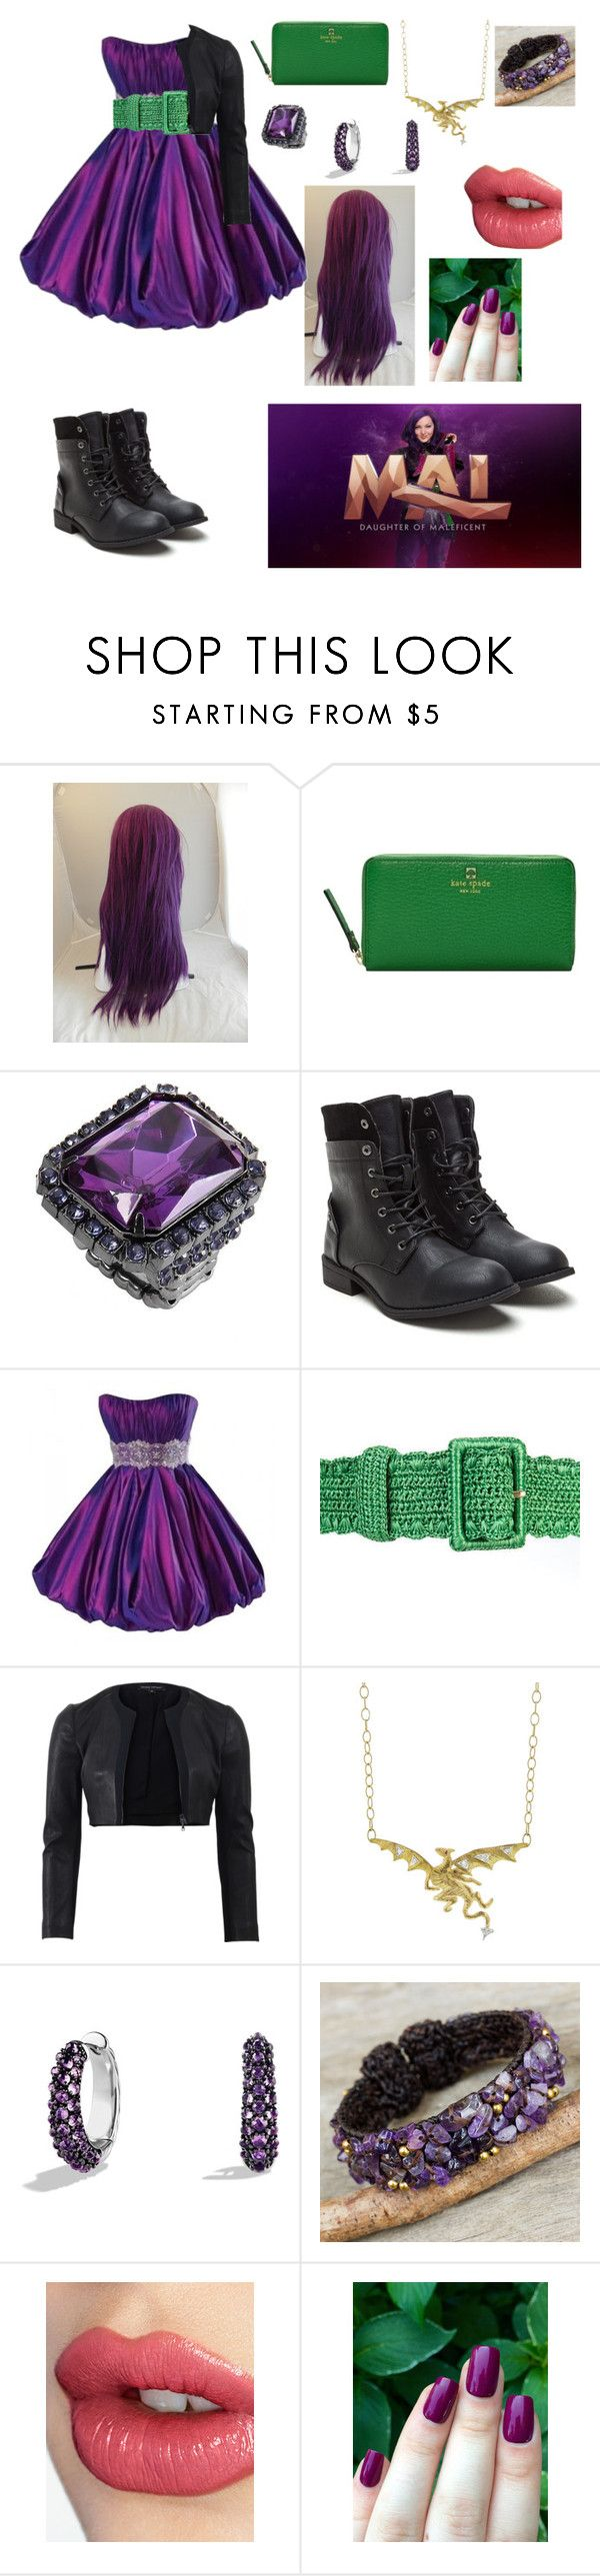 """""""Dedication to Mal from Descendants"""" by gandur-melanie ❤ liked on Polyvore featuring Disney, Kate Spade, Maggie Sottero, Dolce&Gabbana, Narciso Rodriguez, David Yurman, NOVICA and Charlotte Tilbury"""